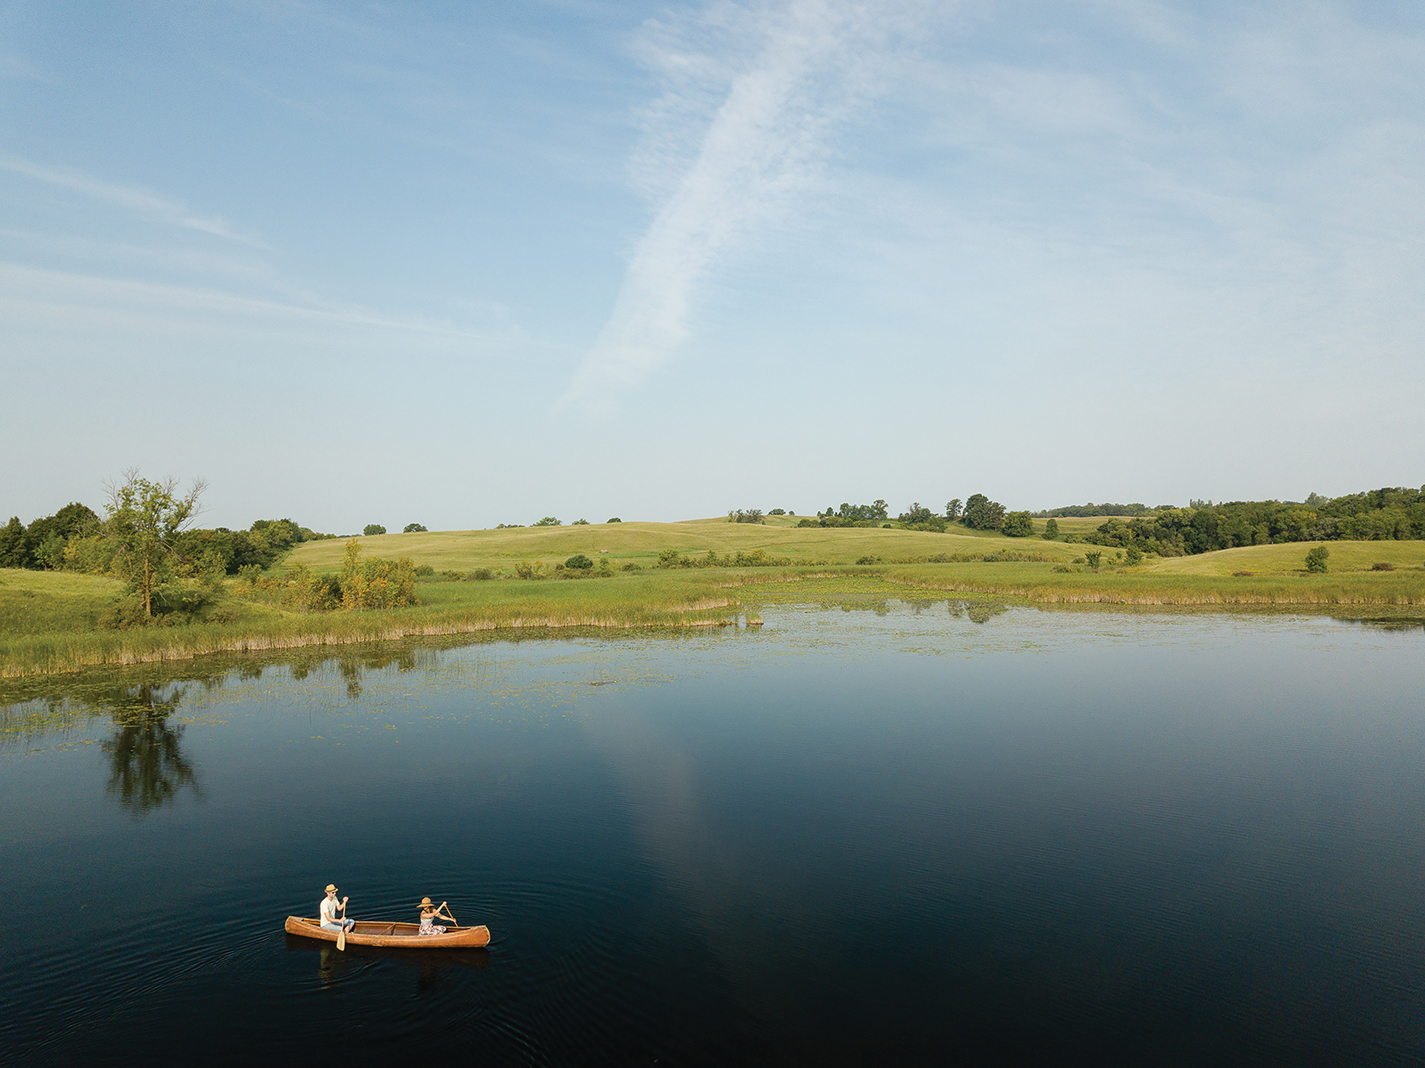 Canoeing on North Union Lake, one of 11 forming Alexandria's Chain of Lakes